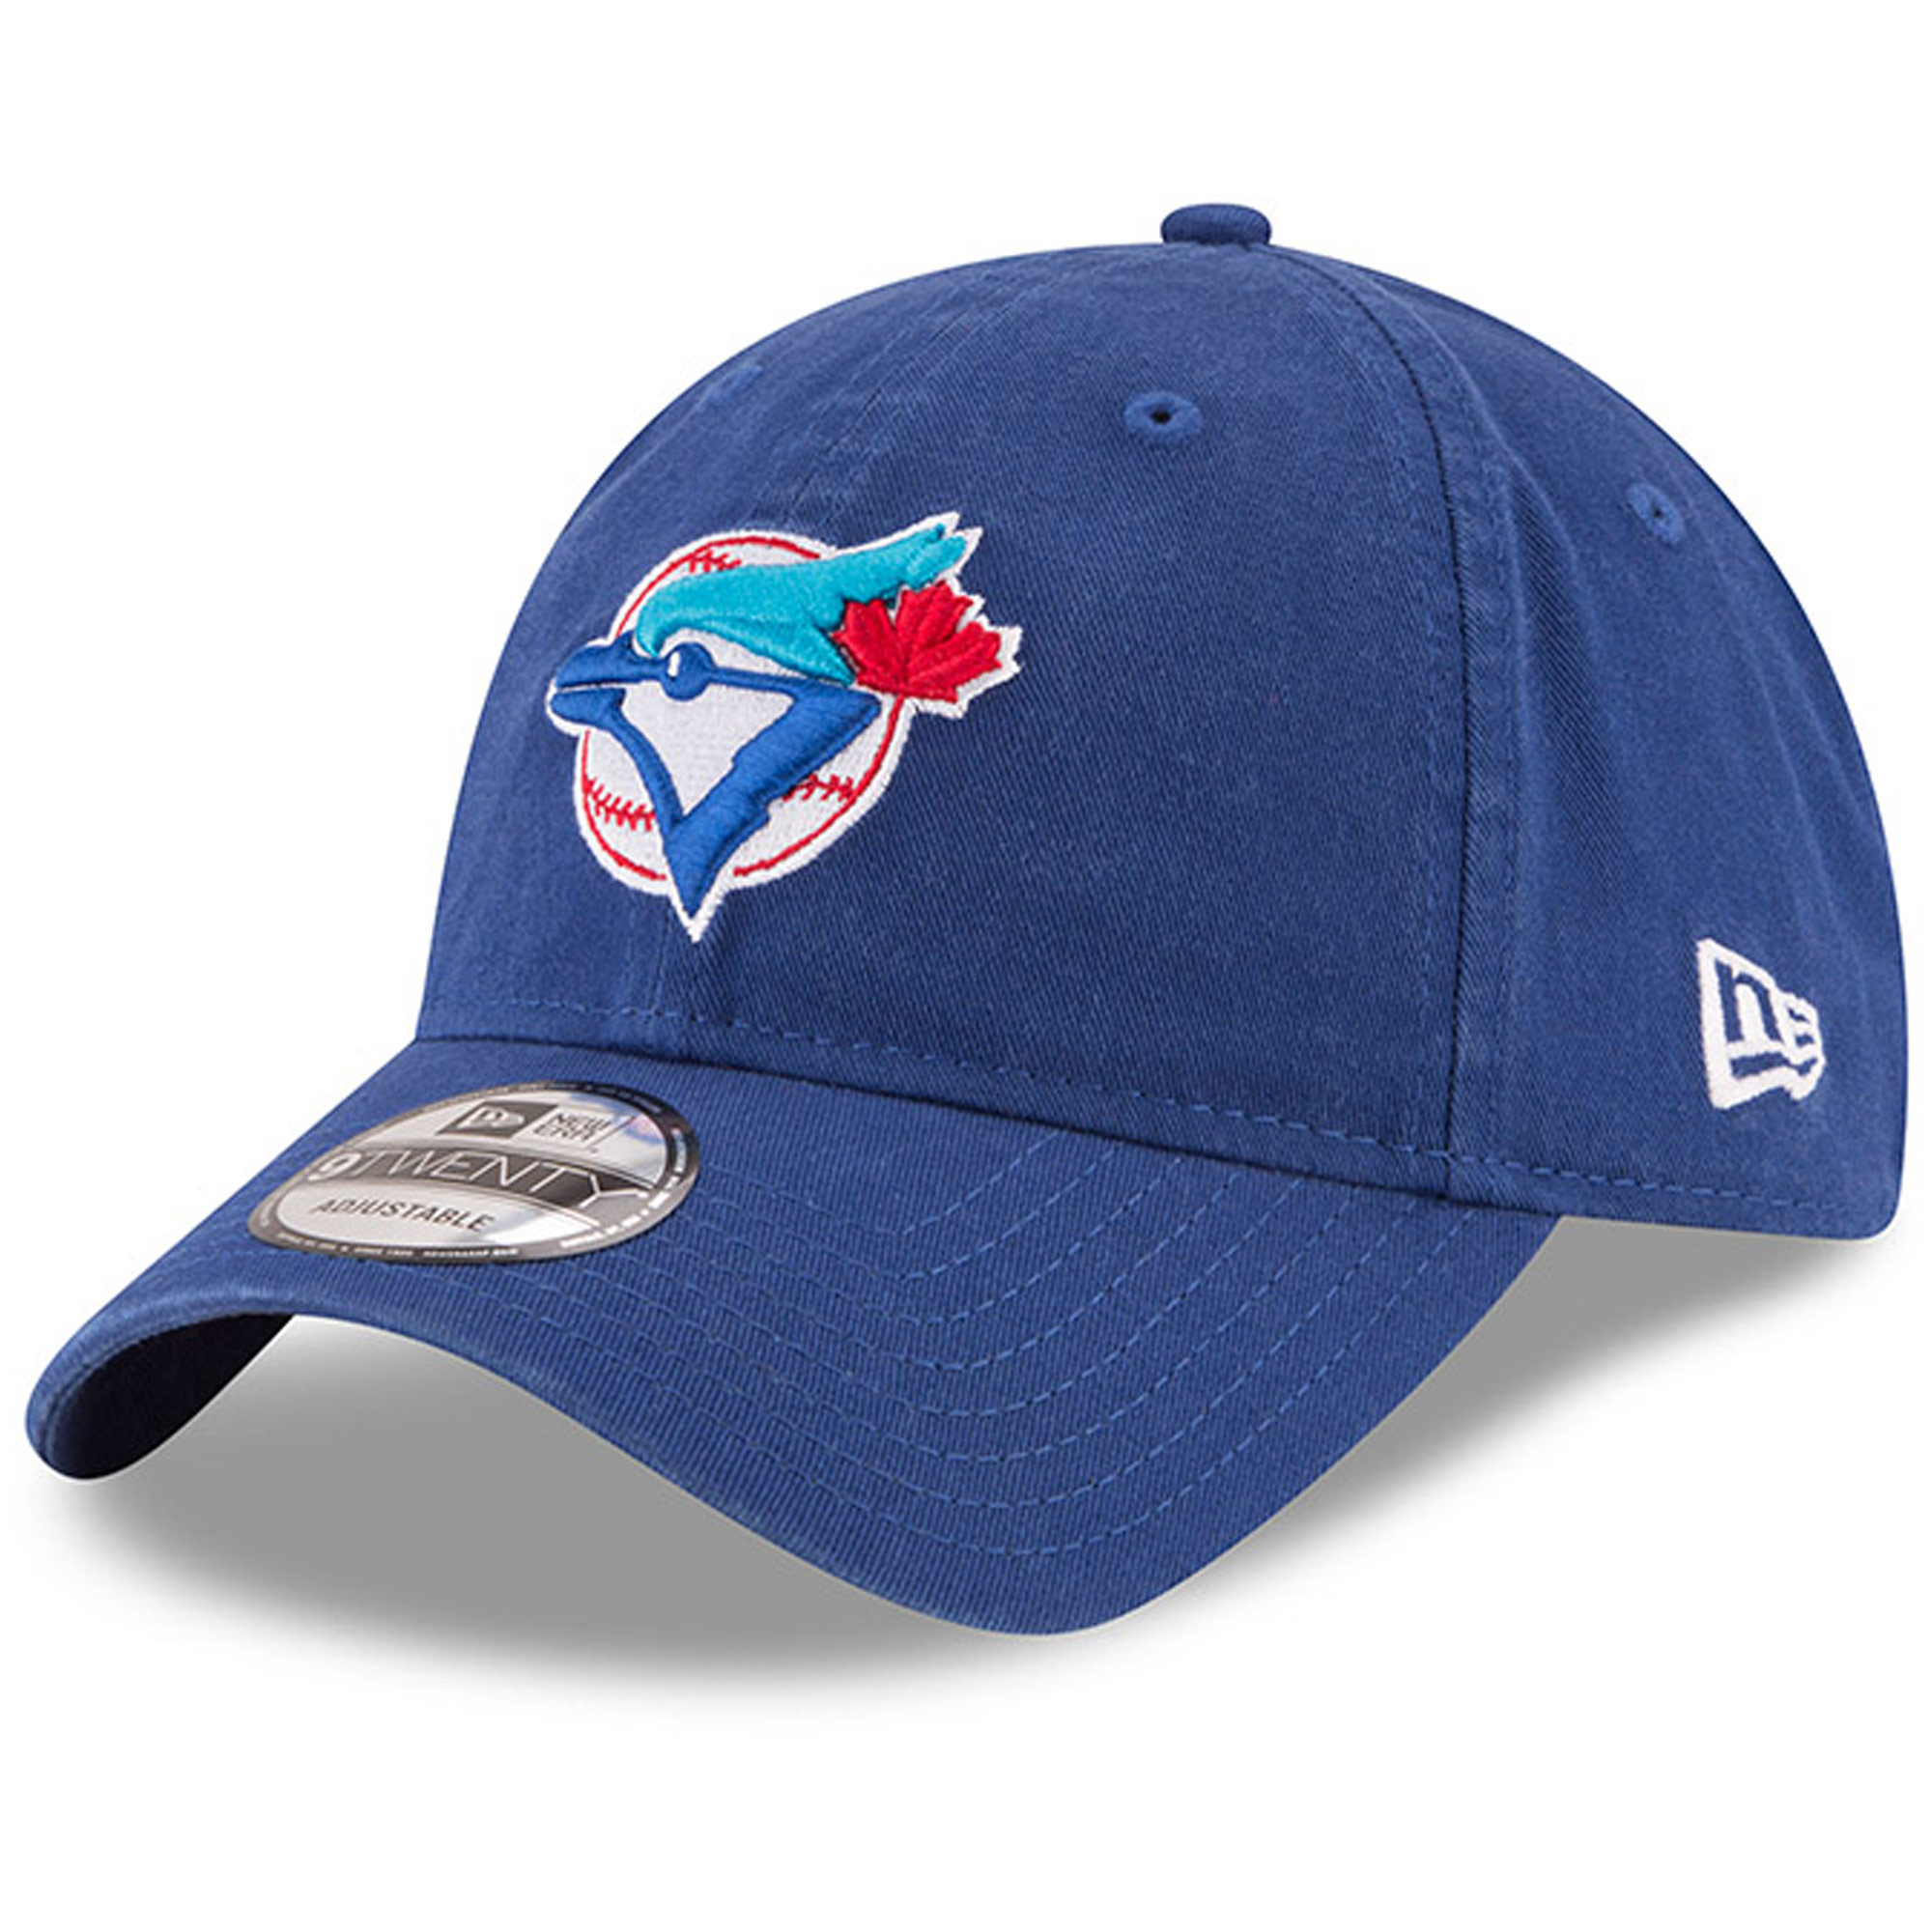 Toronto Blue Jays New Era Cooperstown Collection Core Classic Replica 9TWENTY Adjustable Hat - Royal - OSFA